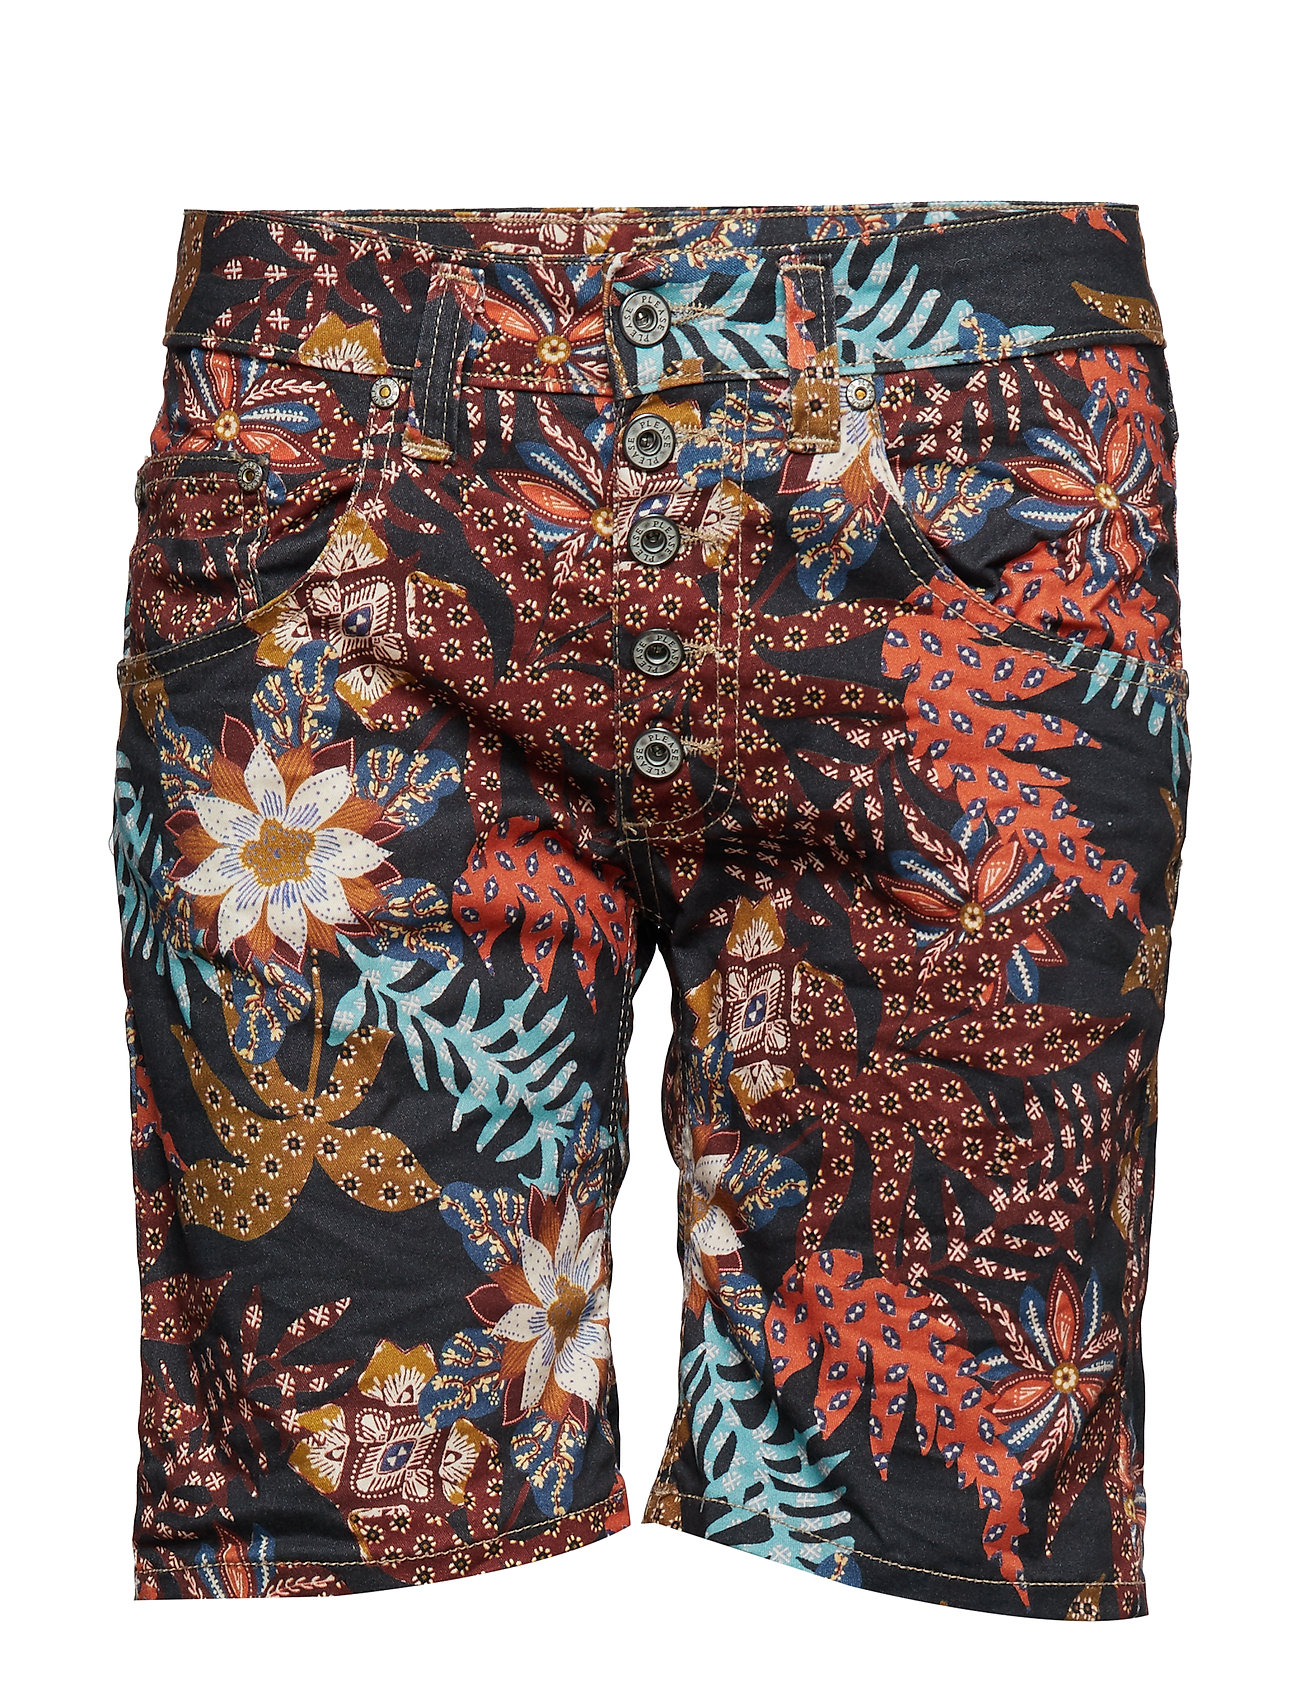 Please Jeans 5B SHORTS PALM PRINT - 0002 MULTICOLOUR